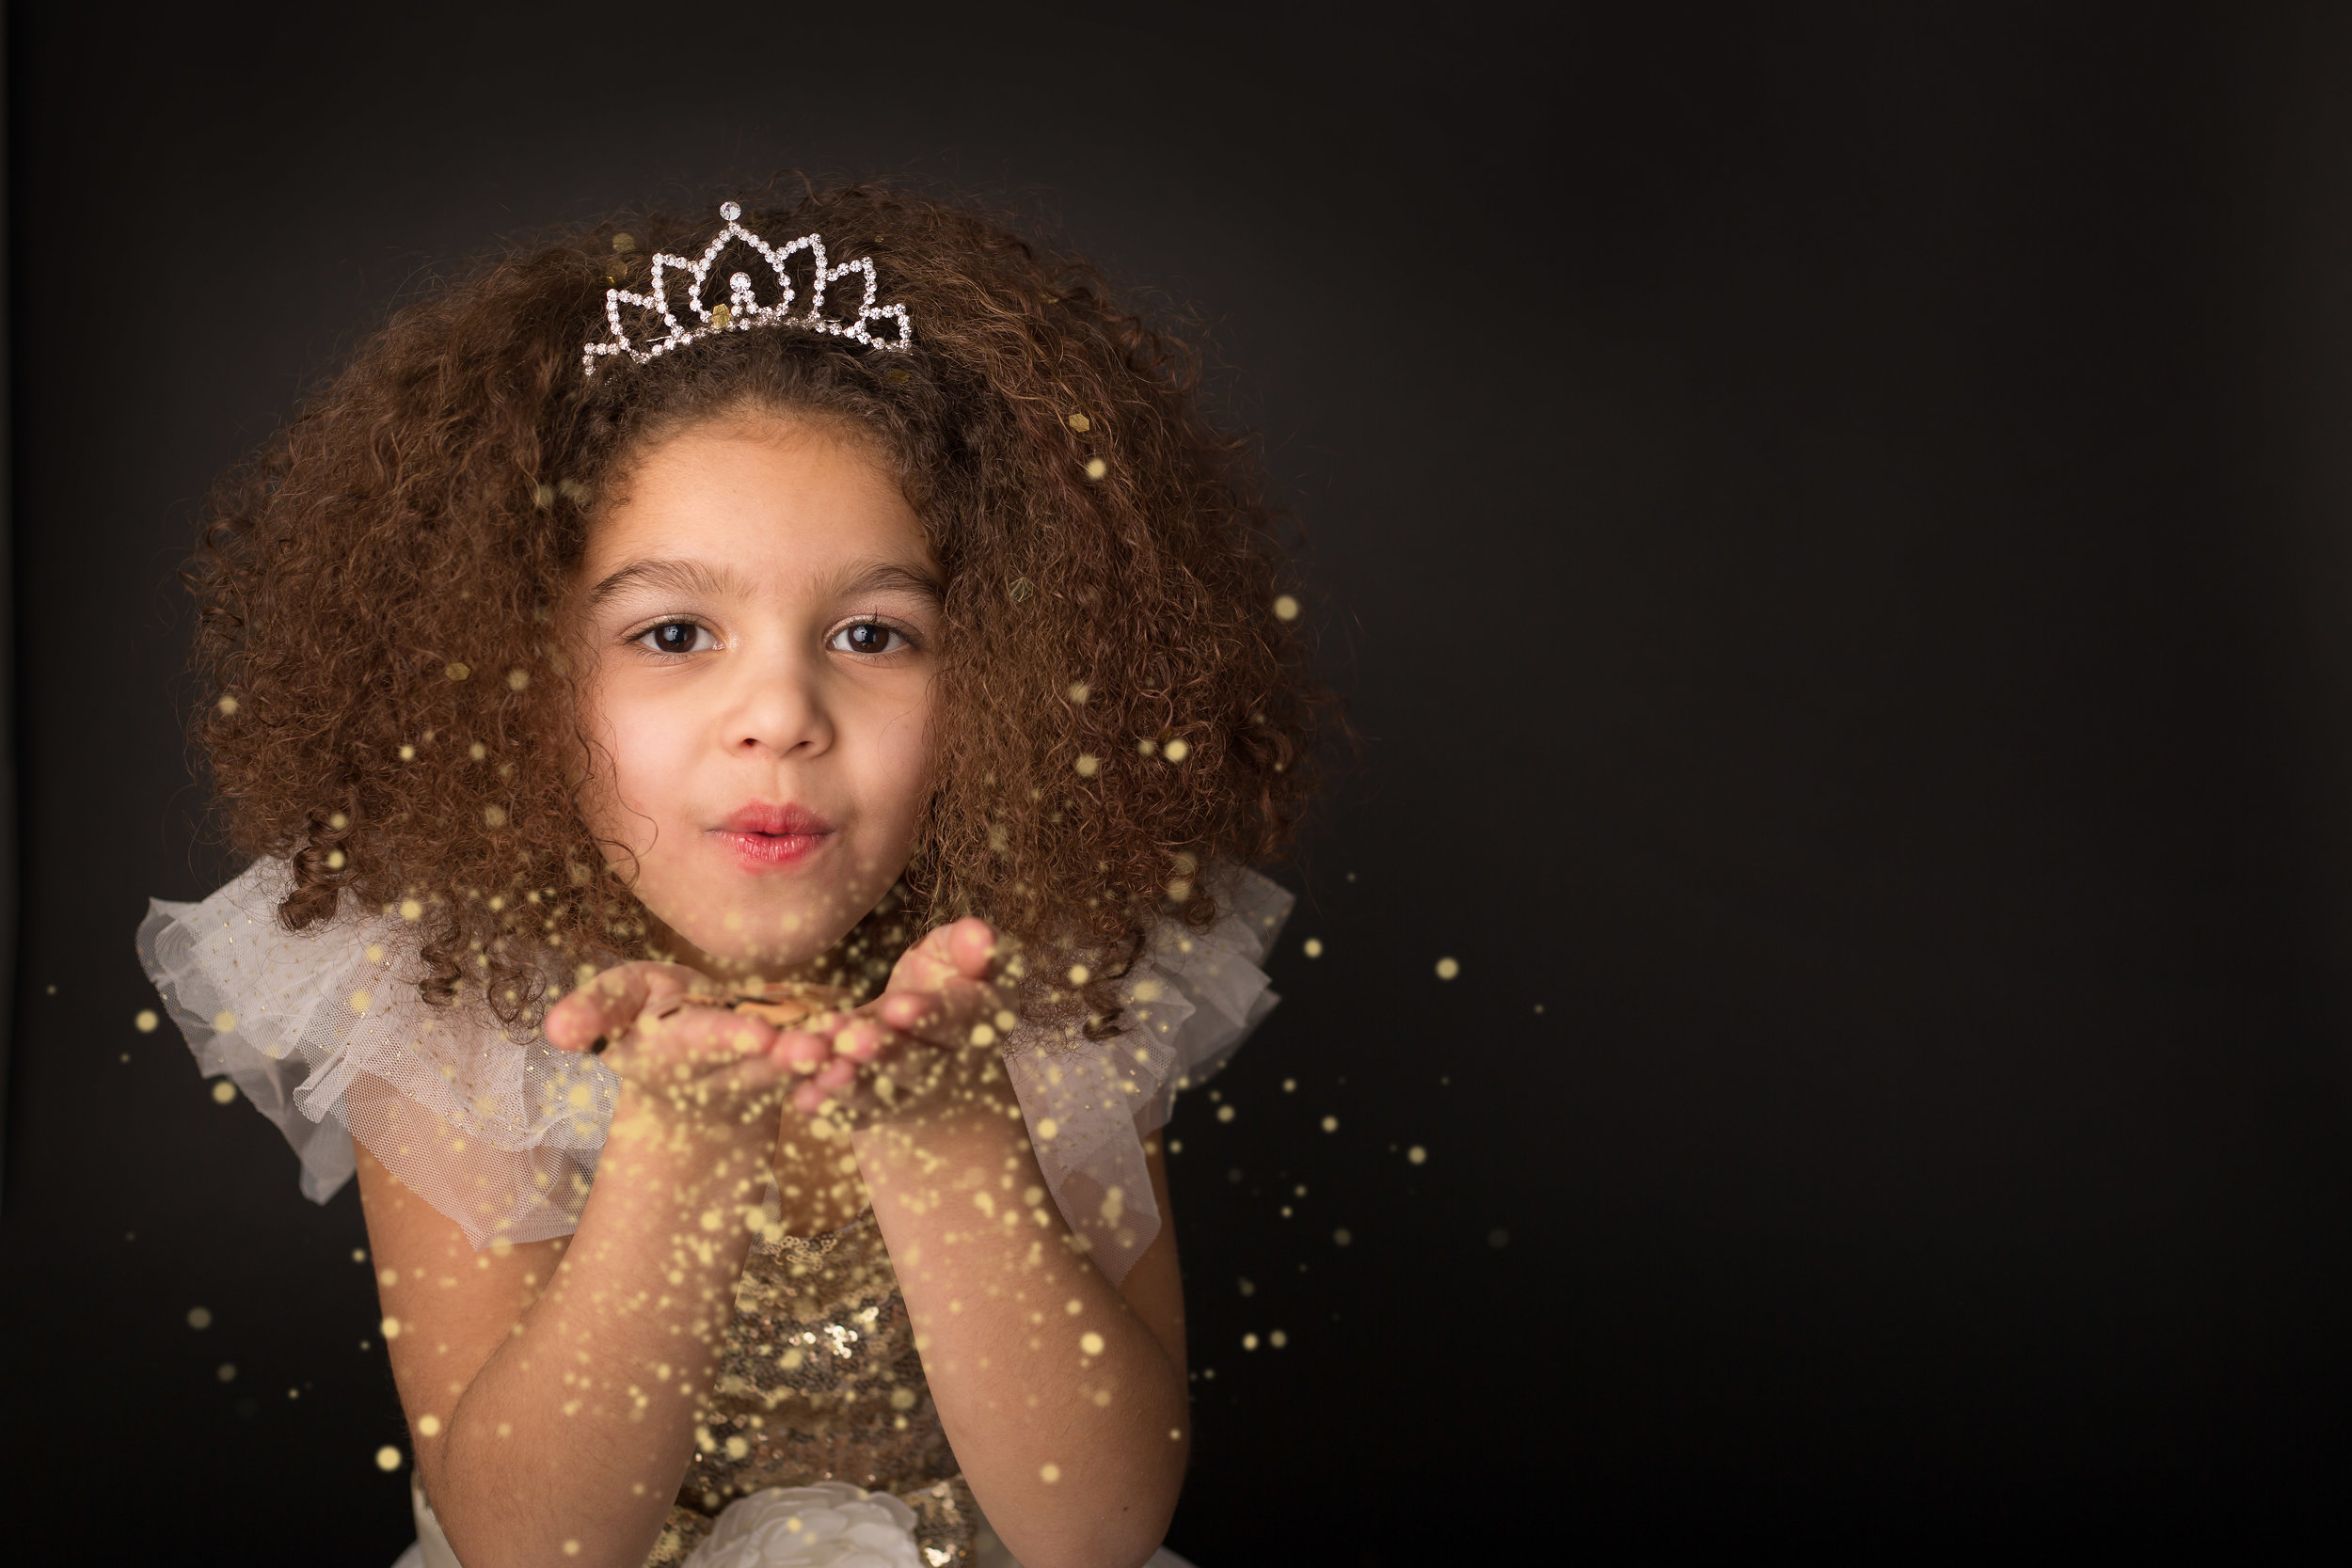 Boutique glitter and gold mini session for girls 4 to 8 years old.